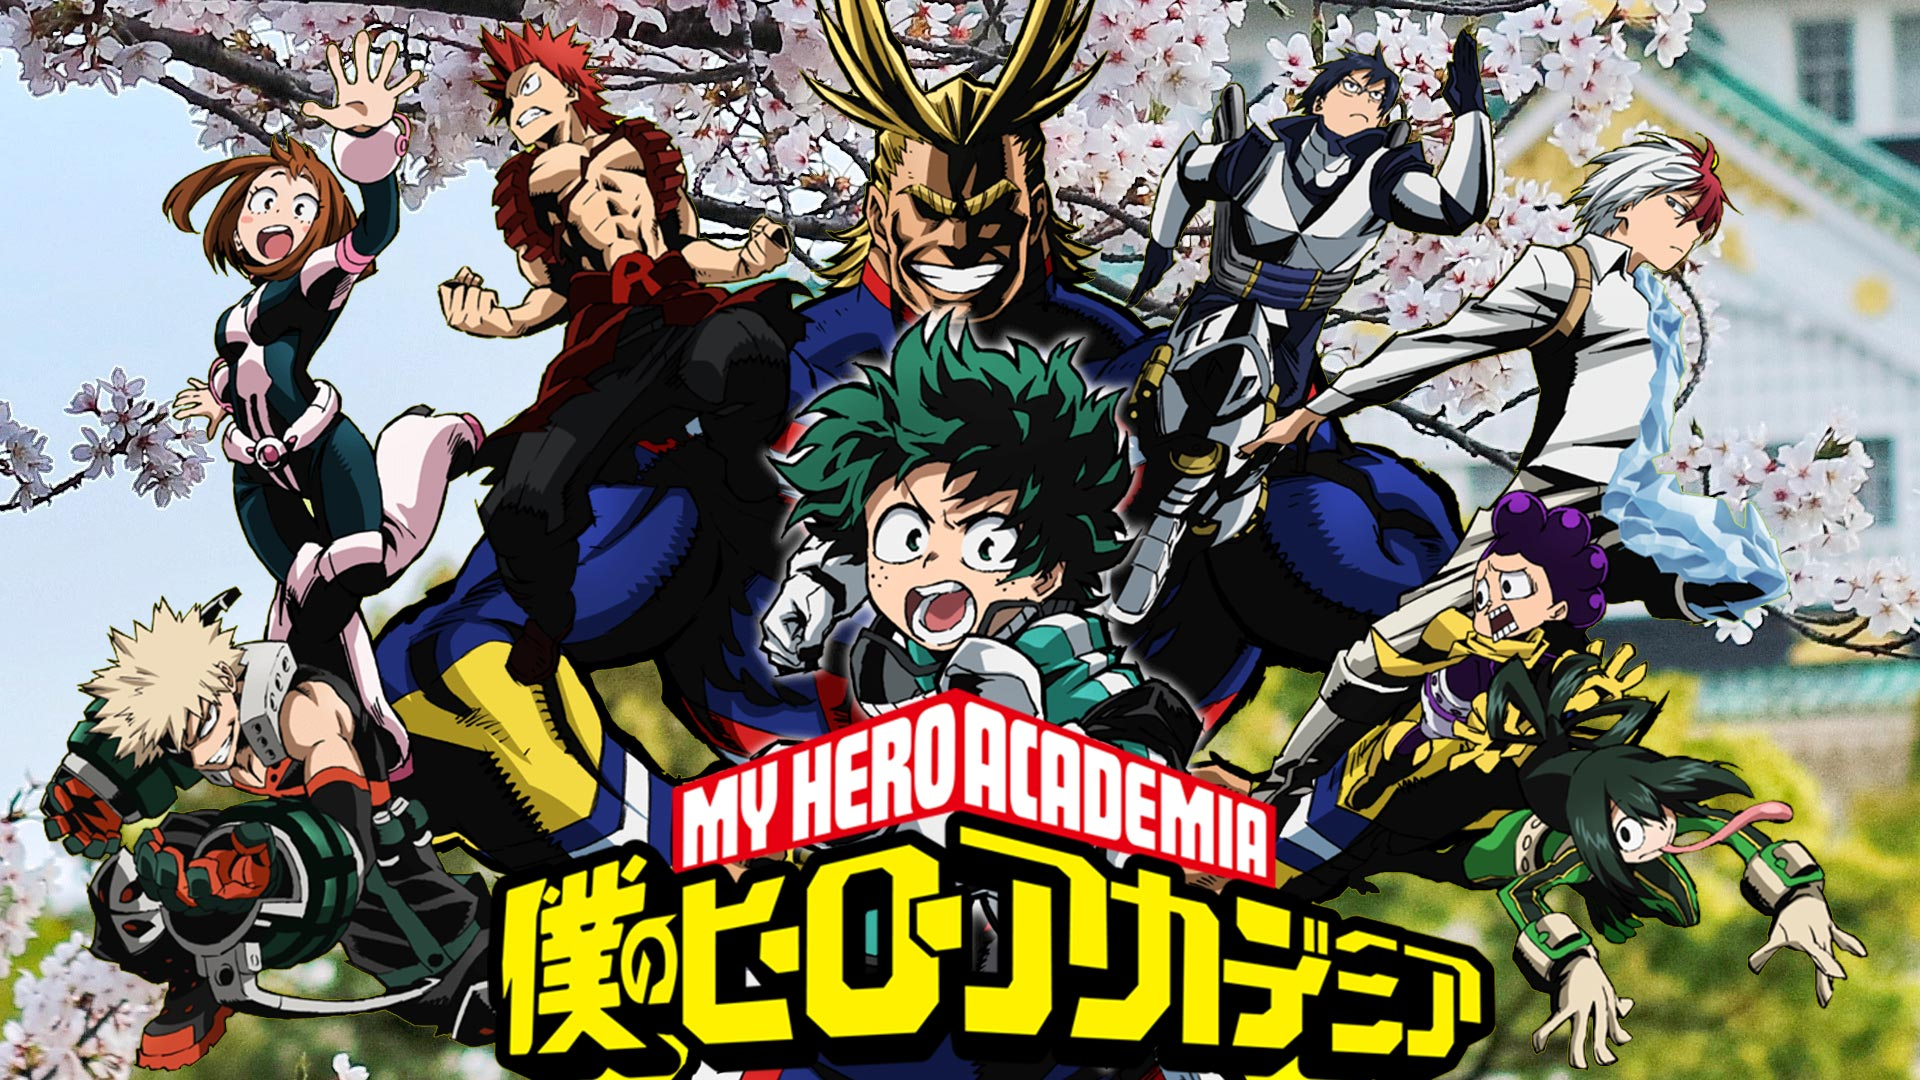 My Hero Academia Review – A Show About Superheroes That You'll Actually Like